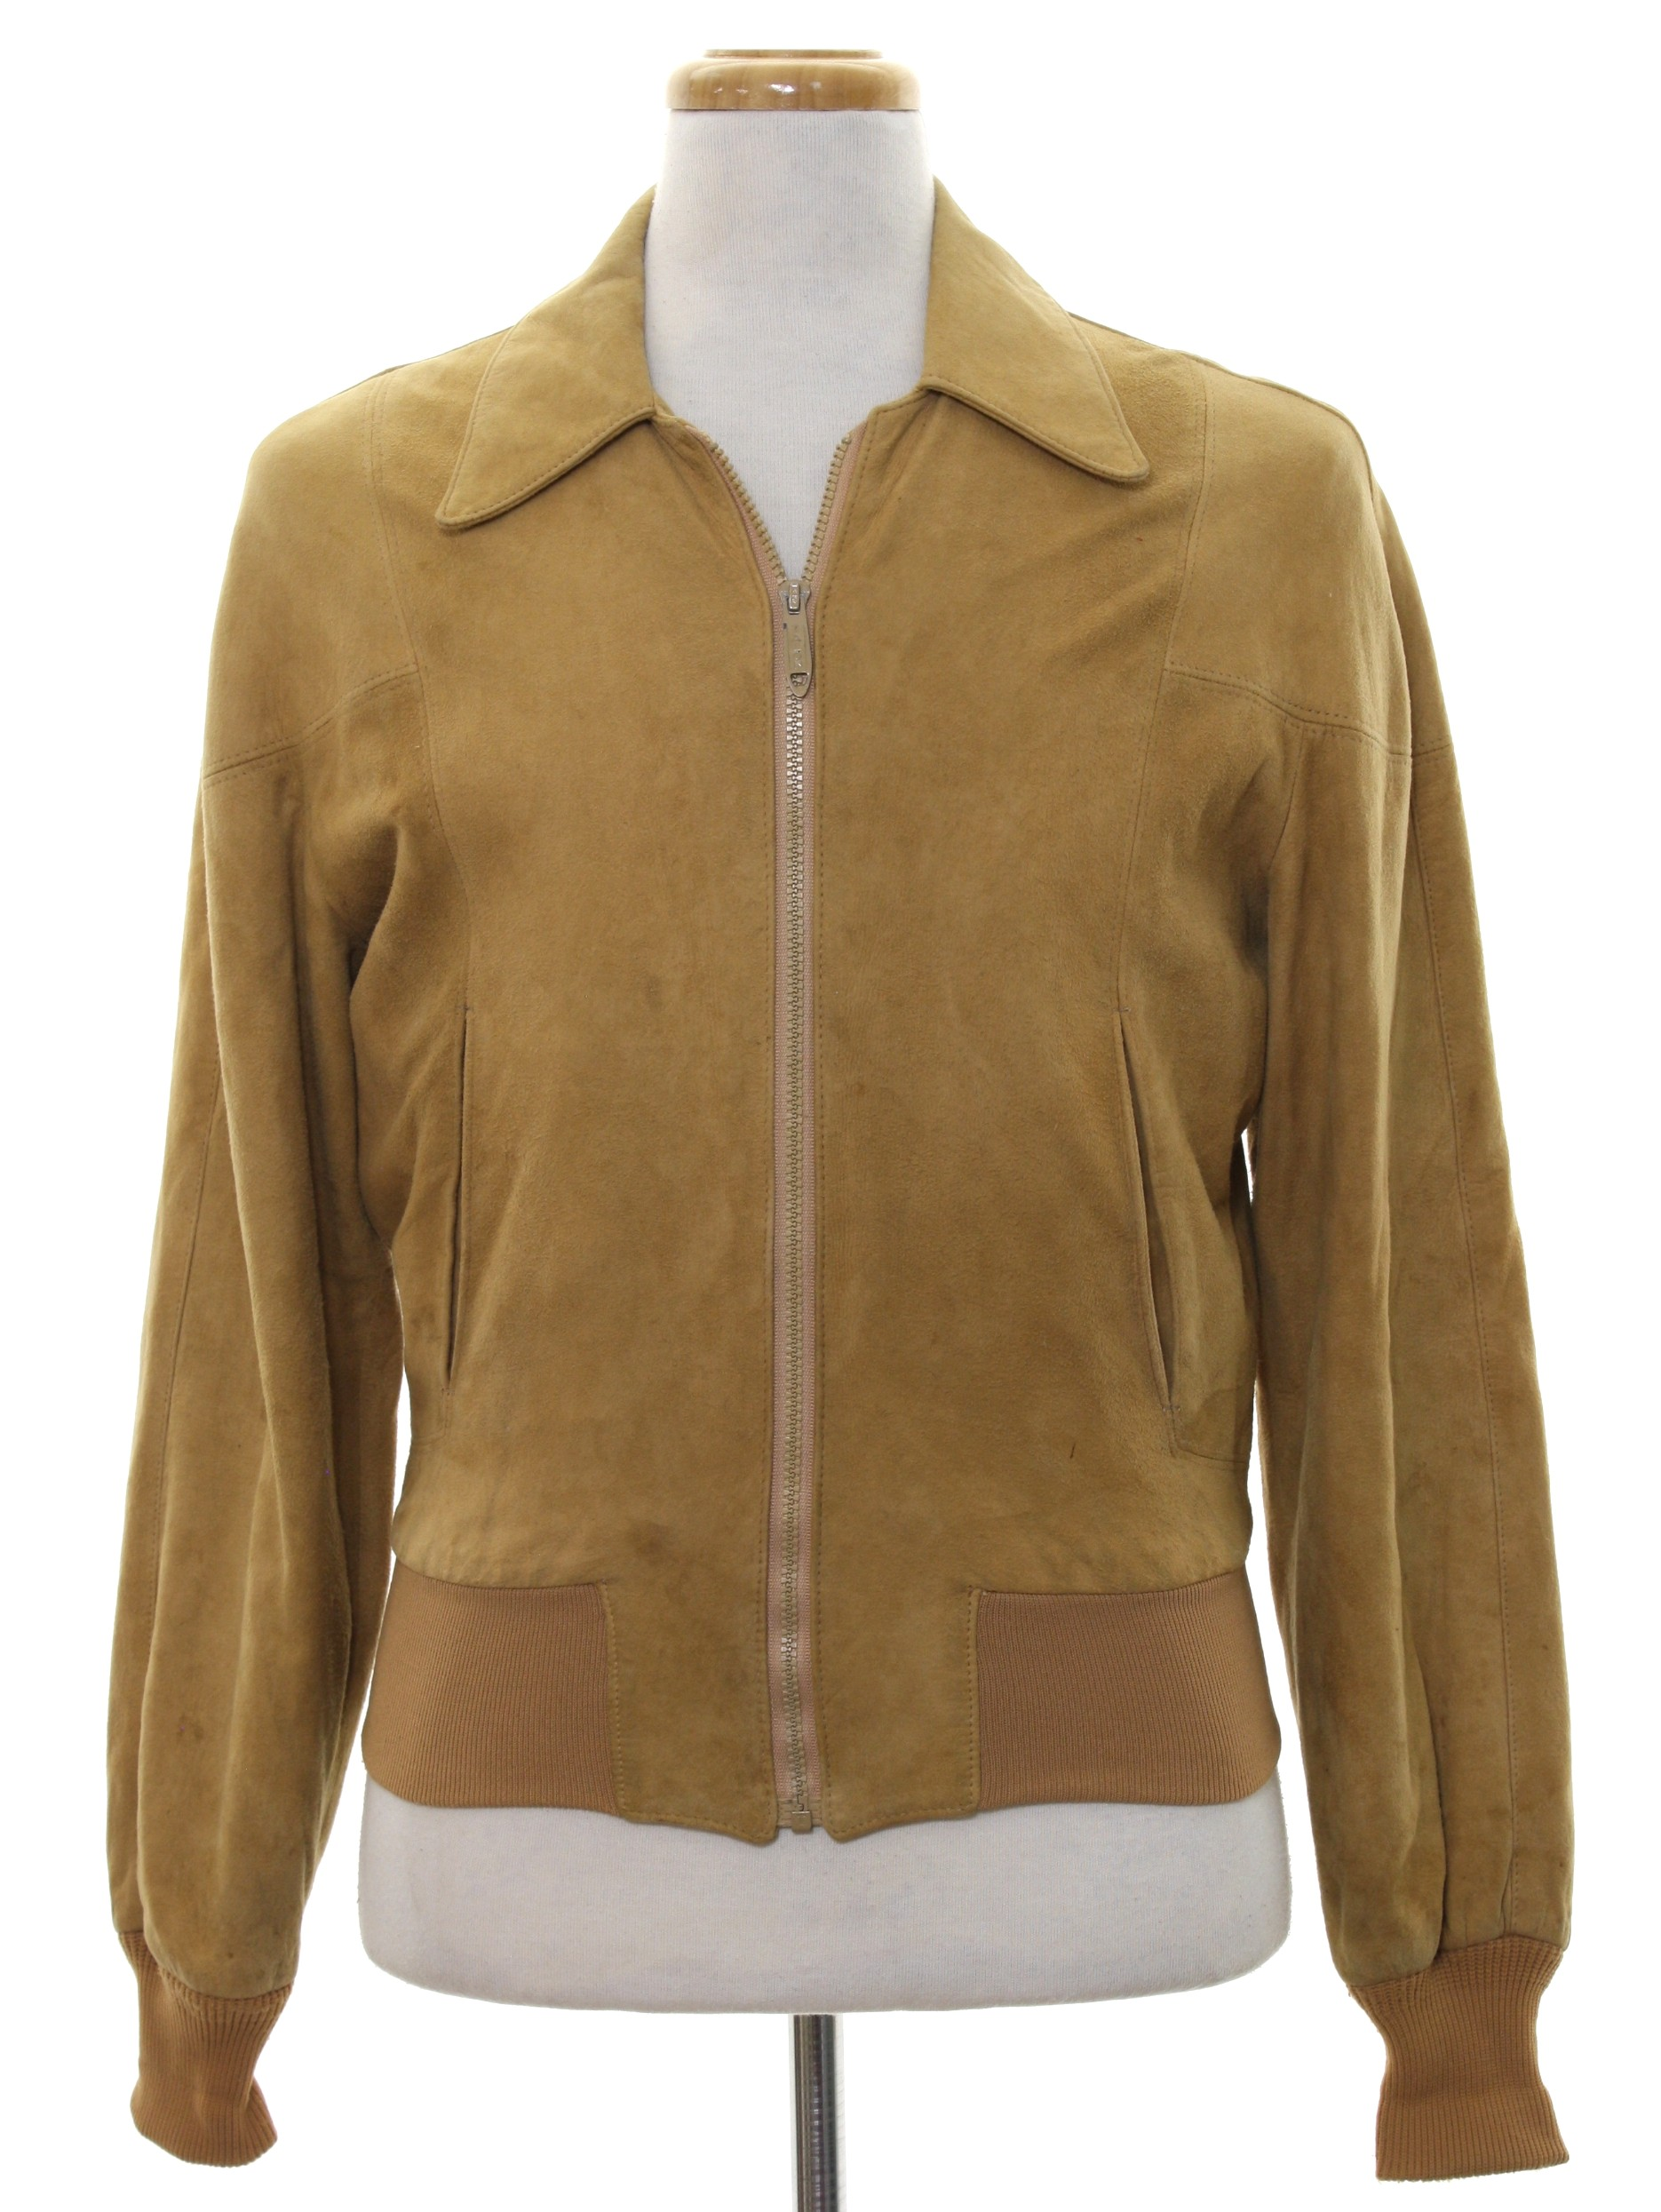 d0fcdc00c842 Leather Fashions 80 s Vintage Leather Jacket  80s -Leather Fashions ...